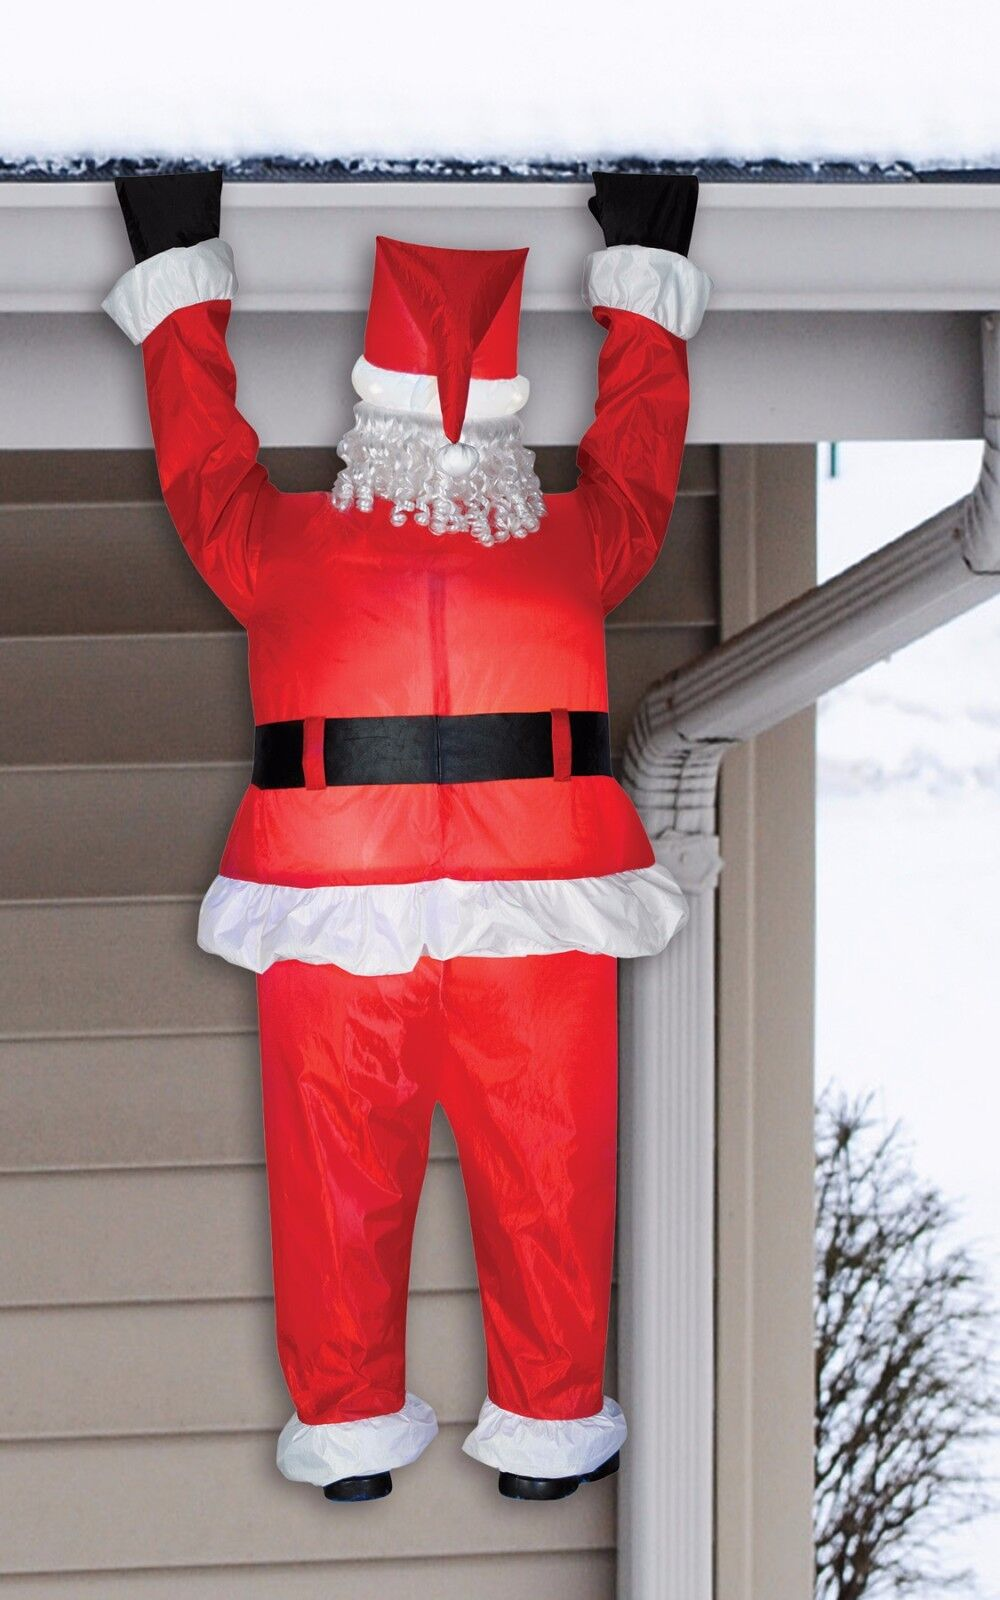 Christmas Holiday Lifesize Santa Easy Air Inflatable Hanging From House Light Up